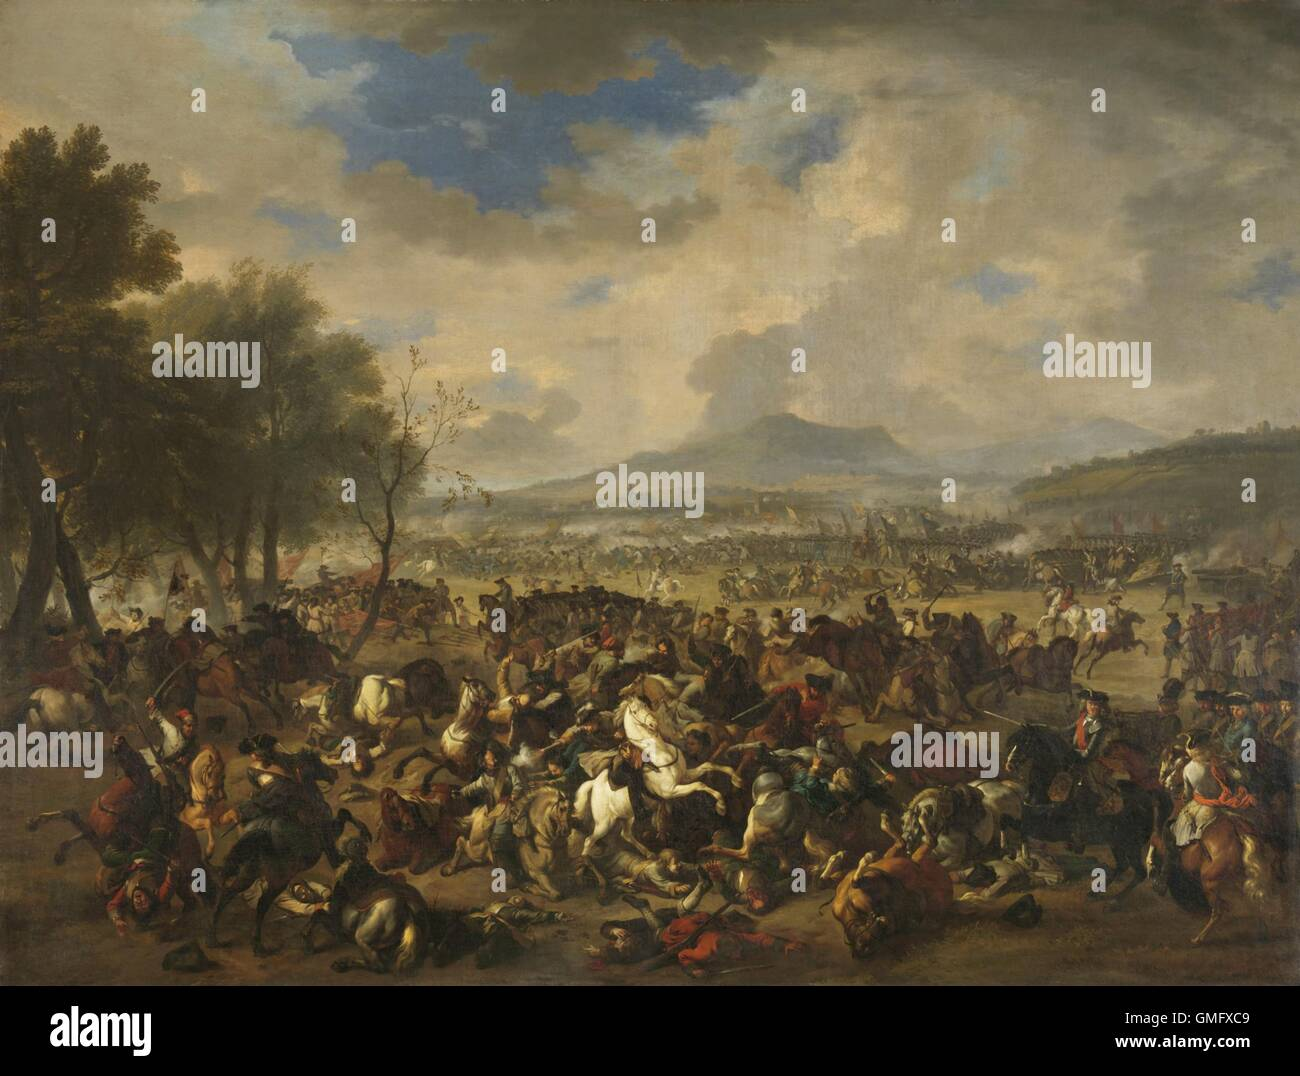 Battle at Ramillies between the French and the Allied Powers, by Jan van Huchtenburg, 1706-10, Dutch painting, oil - Stock Image